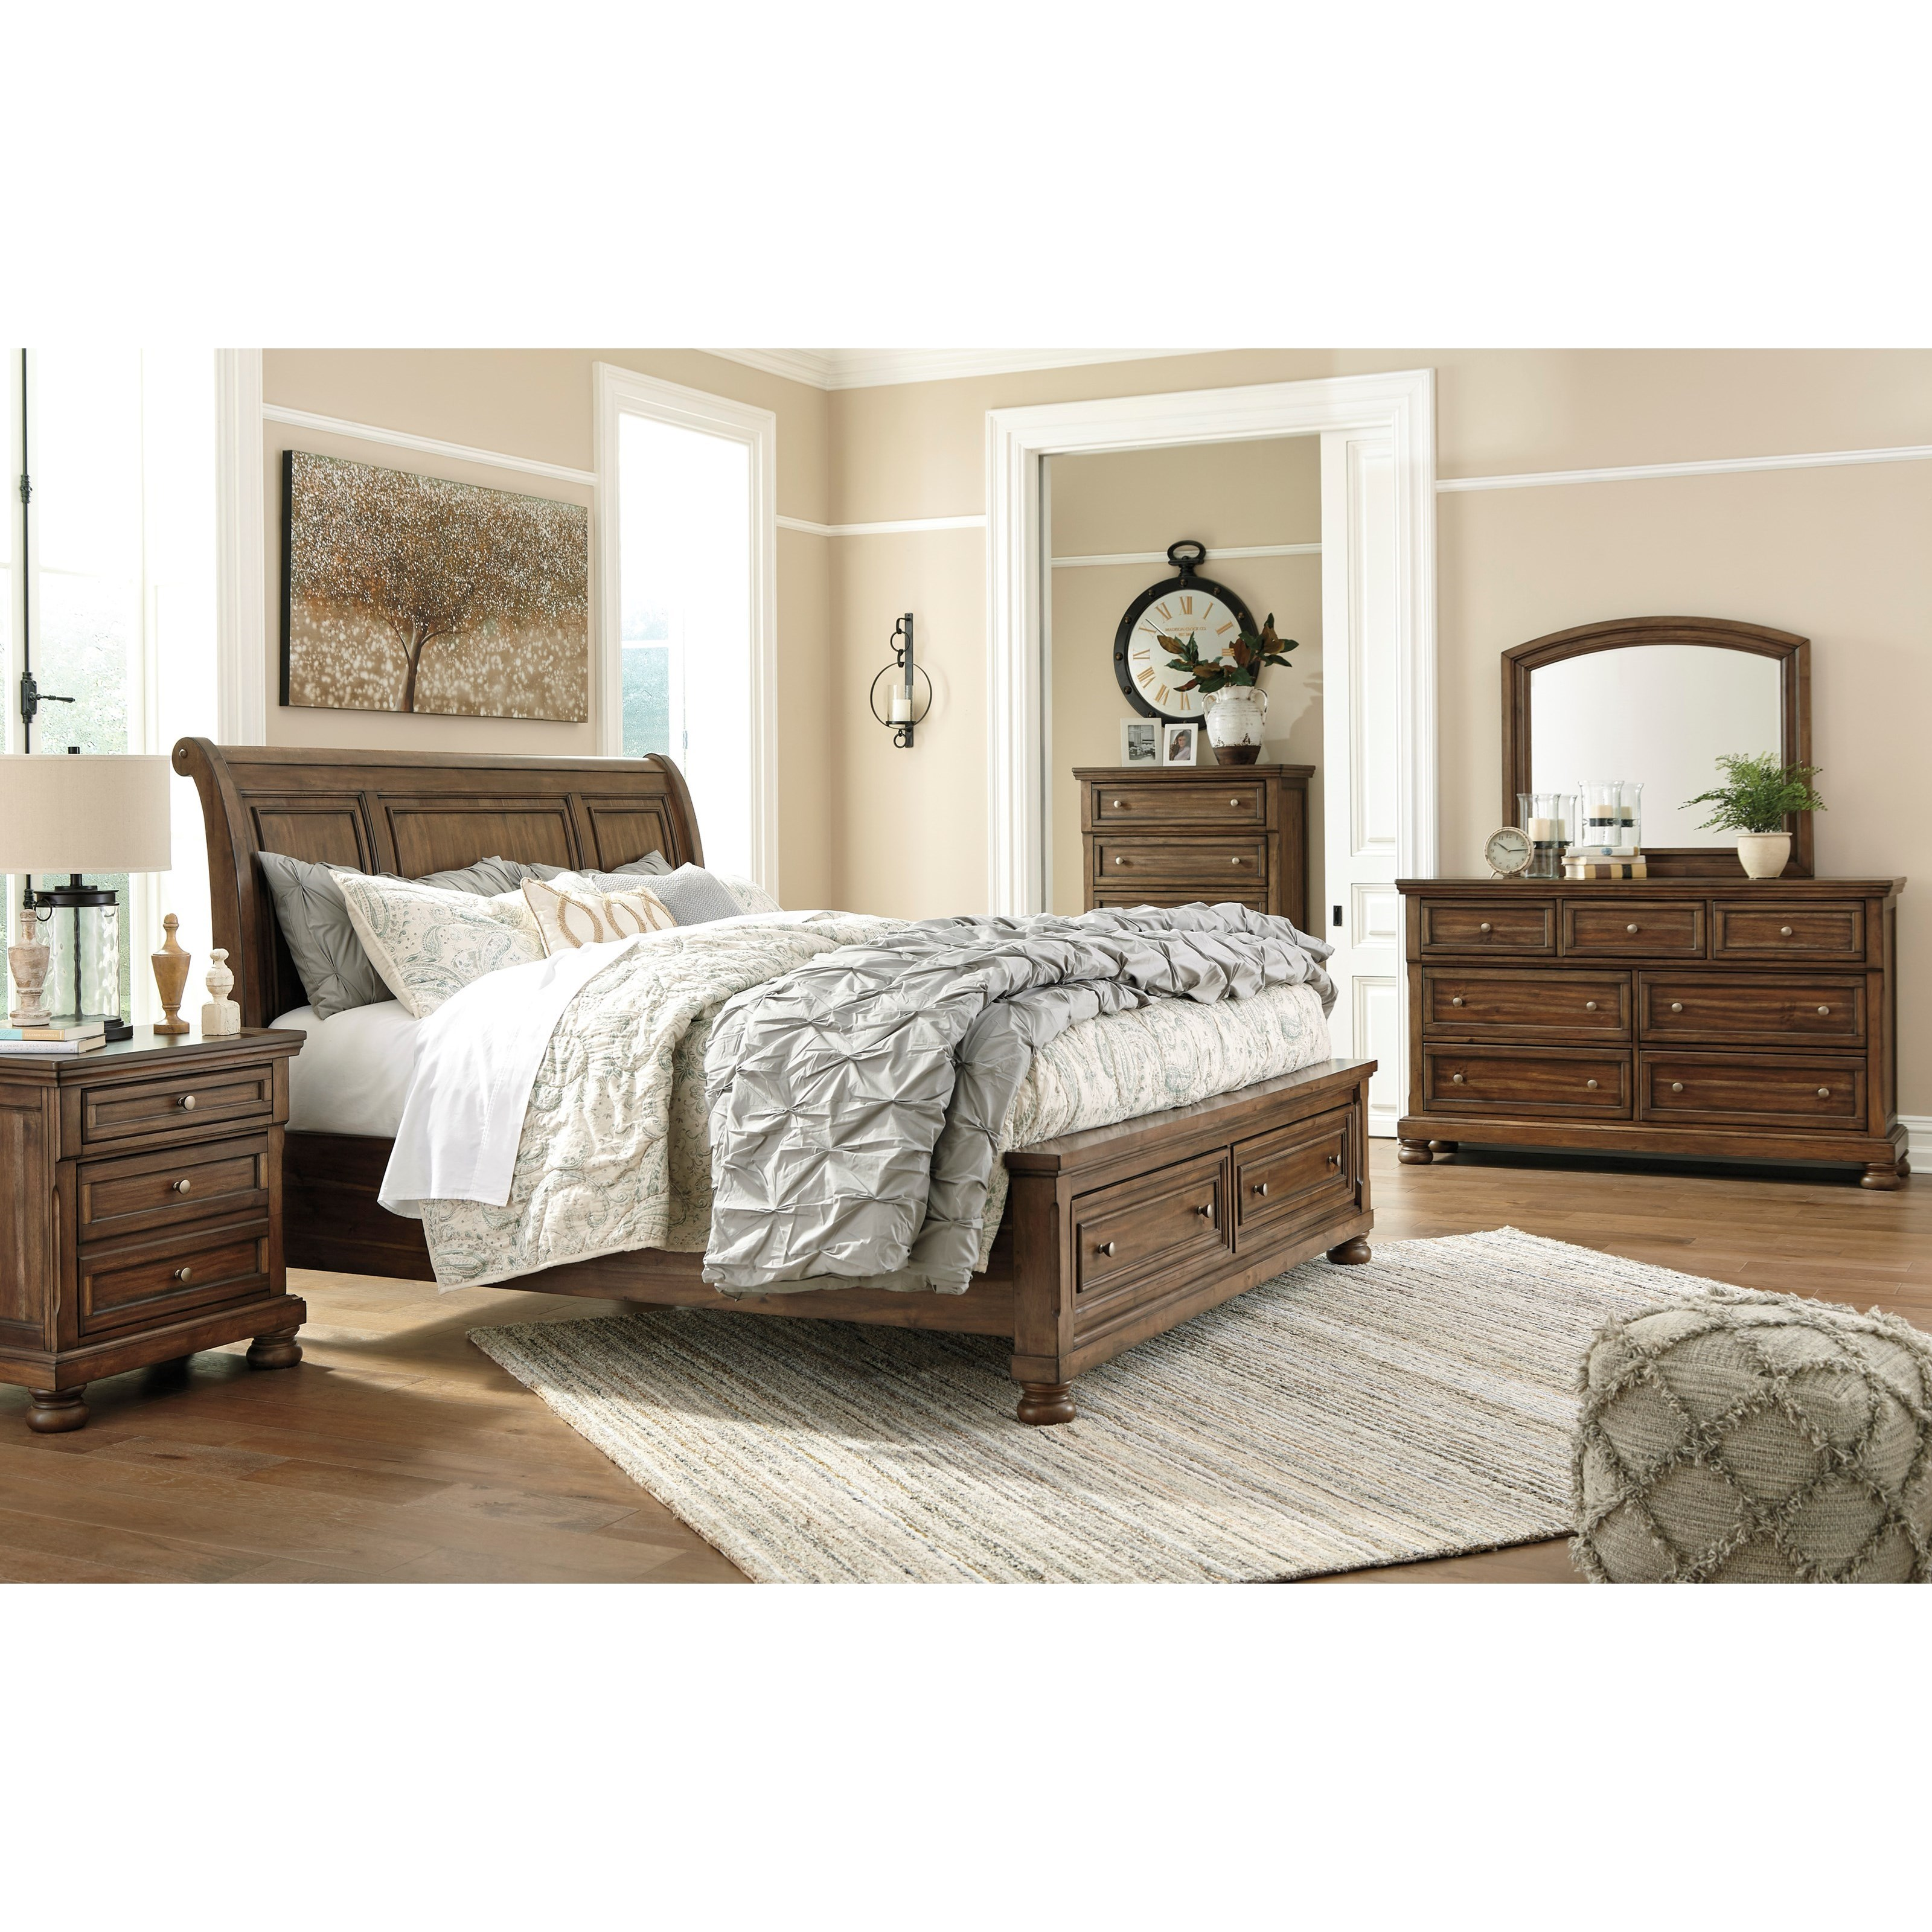 Ashley Signature Design Flynnter Queen Bedroom Group